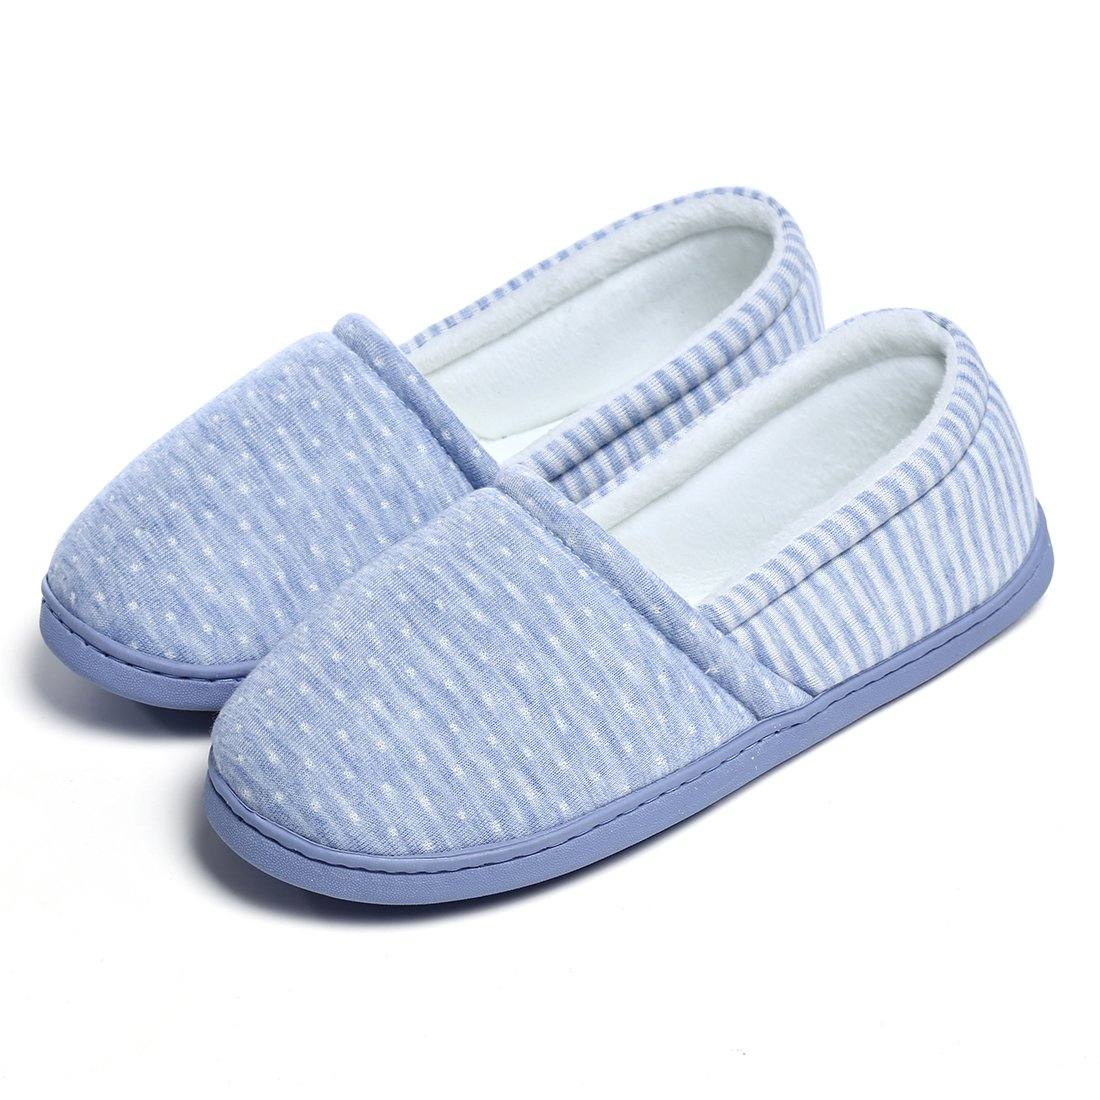 ChicNChic Women Comfortable Cotton Home Slippers Soft Sole Slip on Indoor House Shoes (8.5-9 B(M) US, Blue)